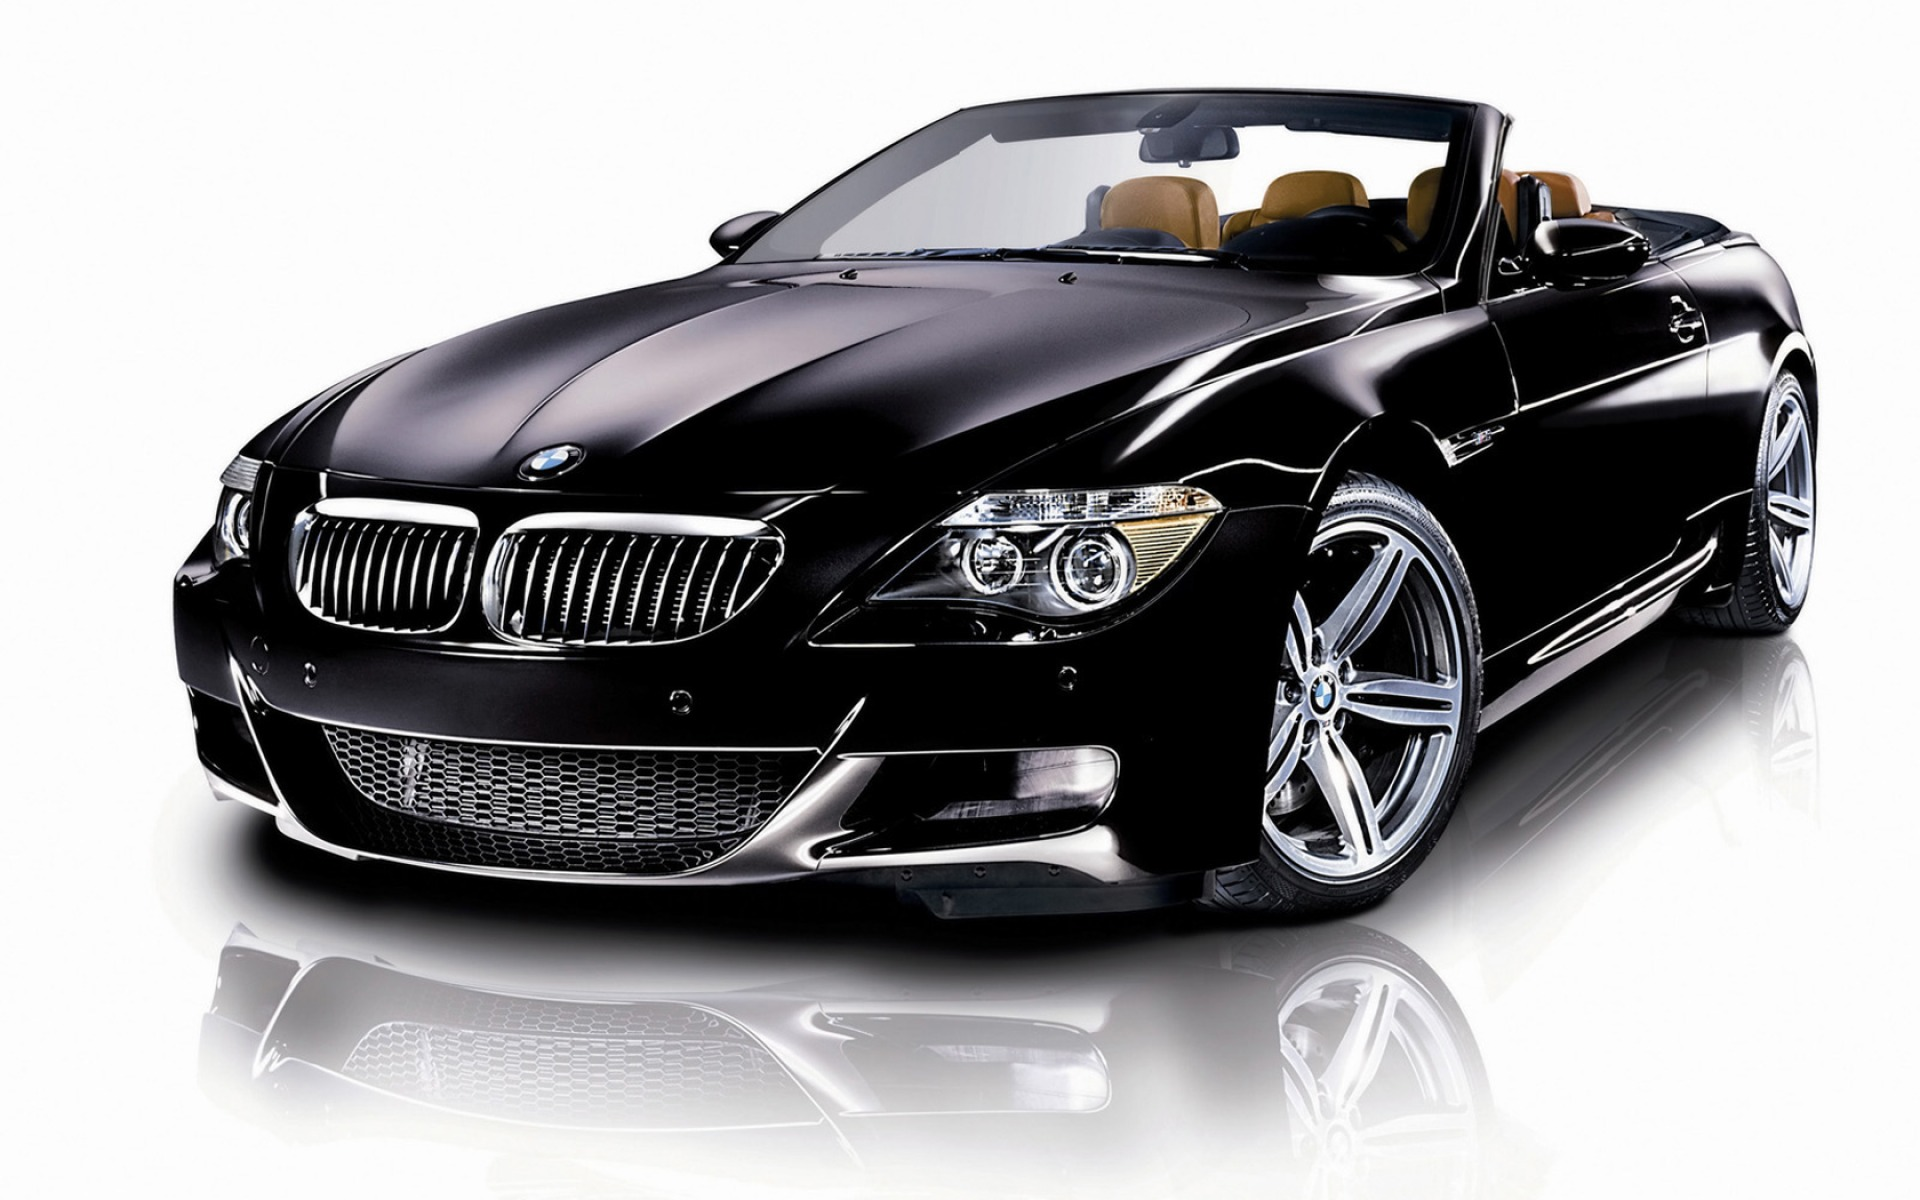 Ultrablogus  Scenic Bmw Car Wallpaper Wallpapers For Free Download About   With Luxury Bmw M Convertible Wallpaper Bmw Cars With Lovely Toyota Interior Parts Also  Mustang Interior In Addition Ridgeline Interior And Au Falcon Interior As Well As  Nova Interior Additionally Interior Door Keys From Allfreedownloadcom With Ultrablogus  Luxury Bmw Car Wallpaper Wallpapers For Free Download About   With Lovely Bmw M Convertible Wallpaper Bmw Cars And Scenic Toyota Interior Parts Also  Mustang Interior In Addition Ridgeline Interior From Allfreedownloadcom